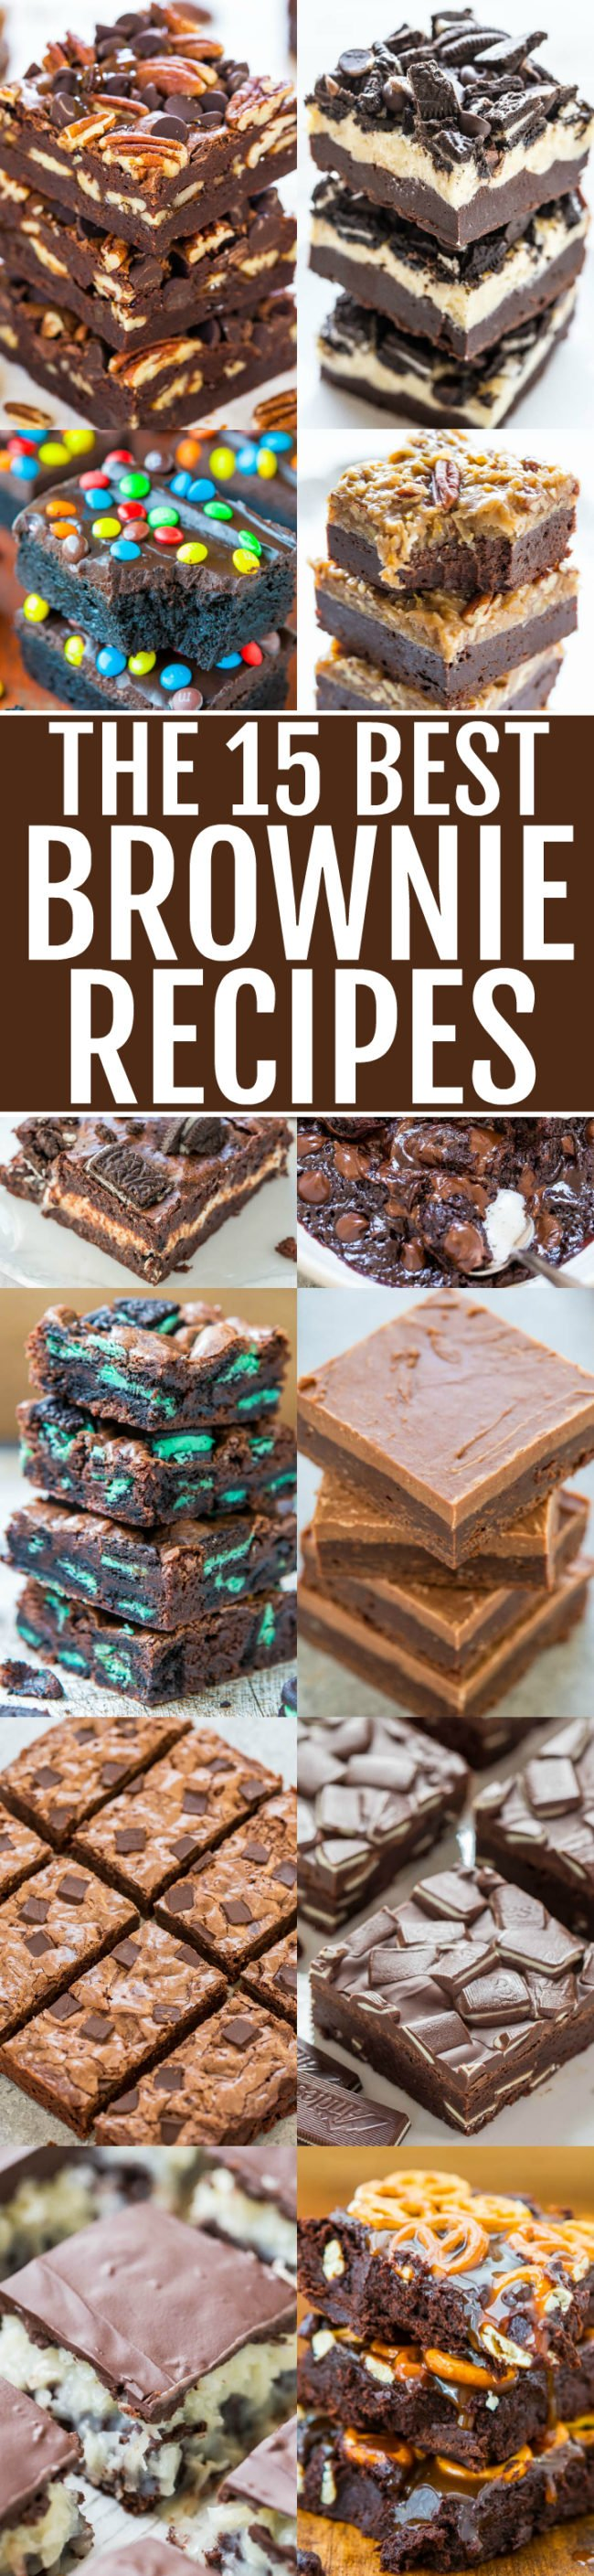 The 15 Best Brownie Recipes pic collage